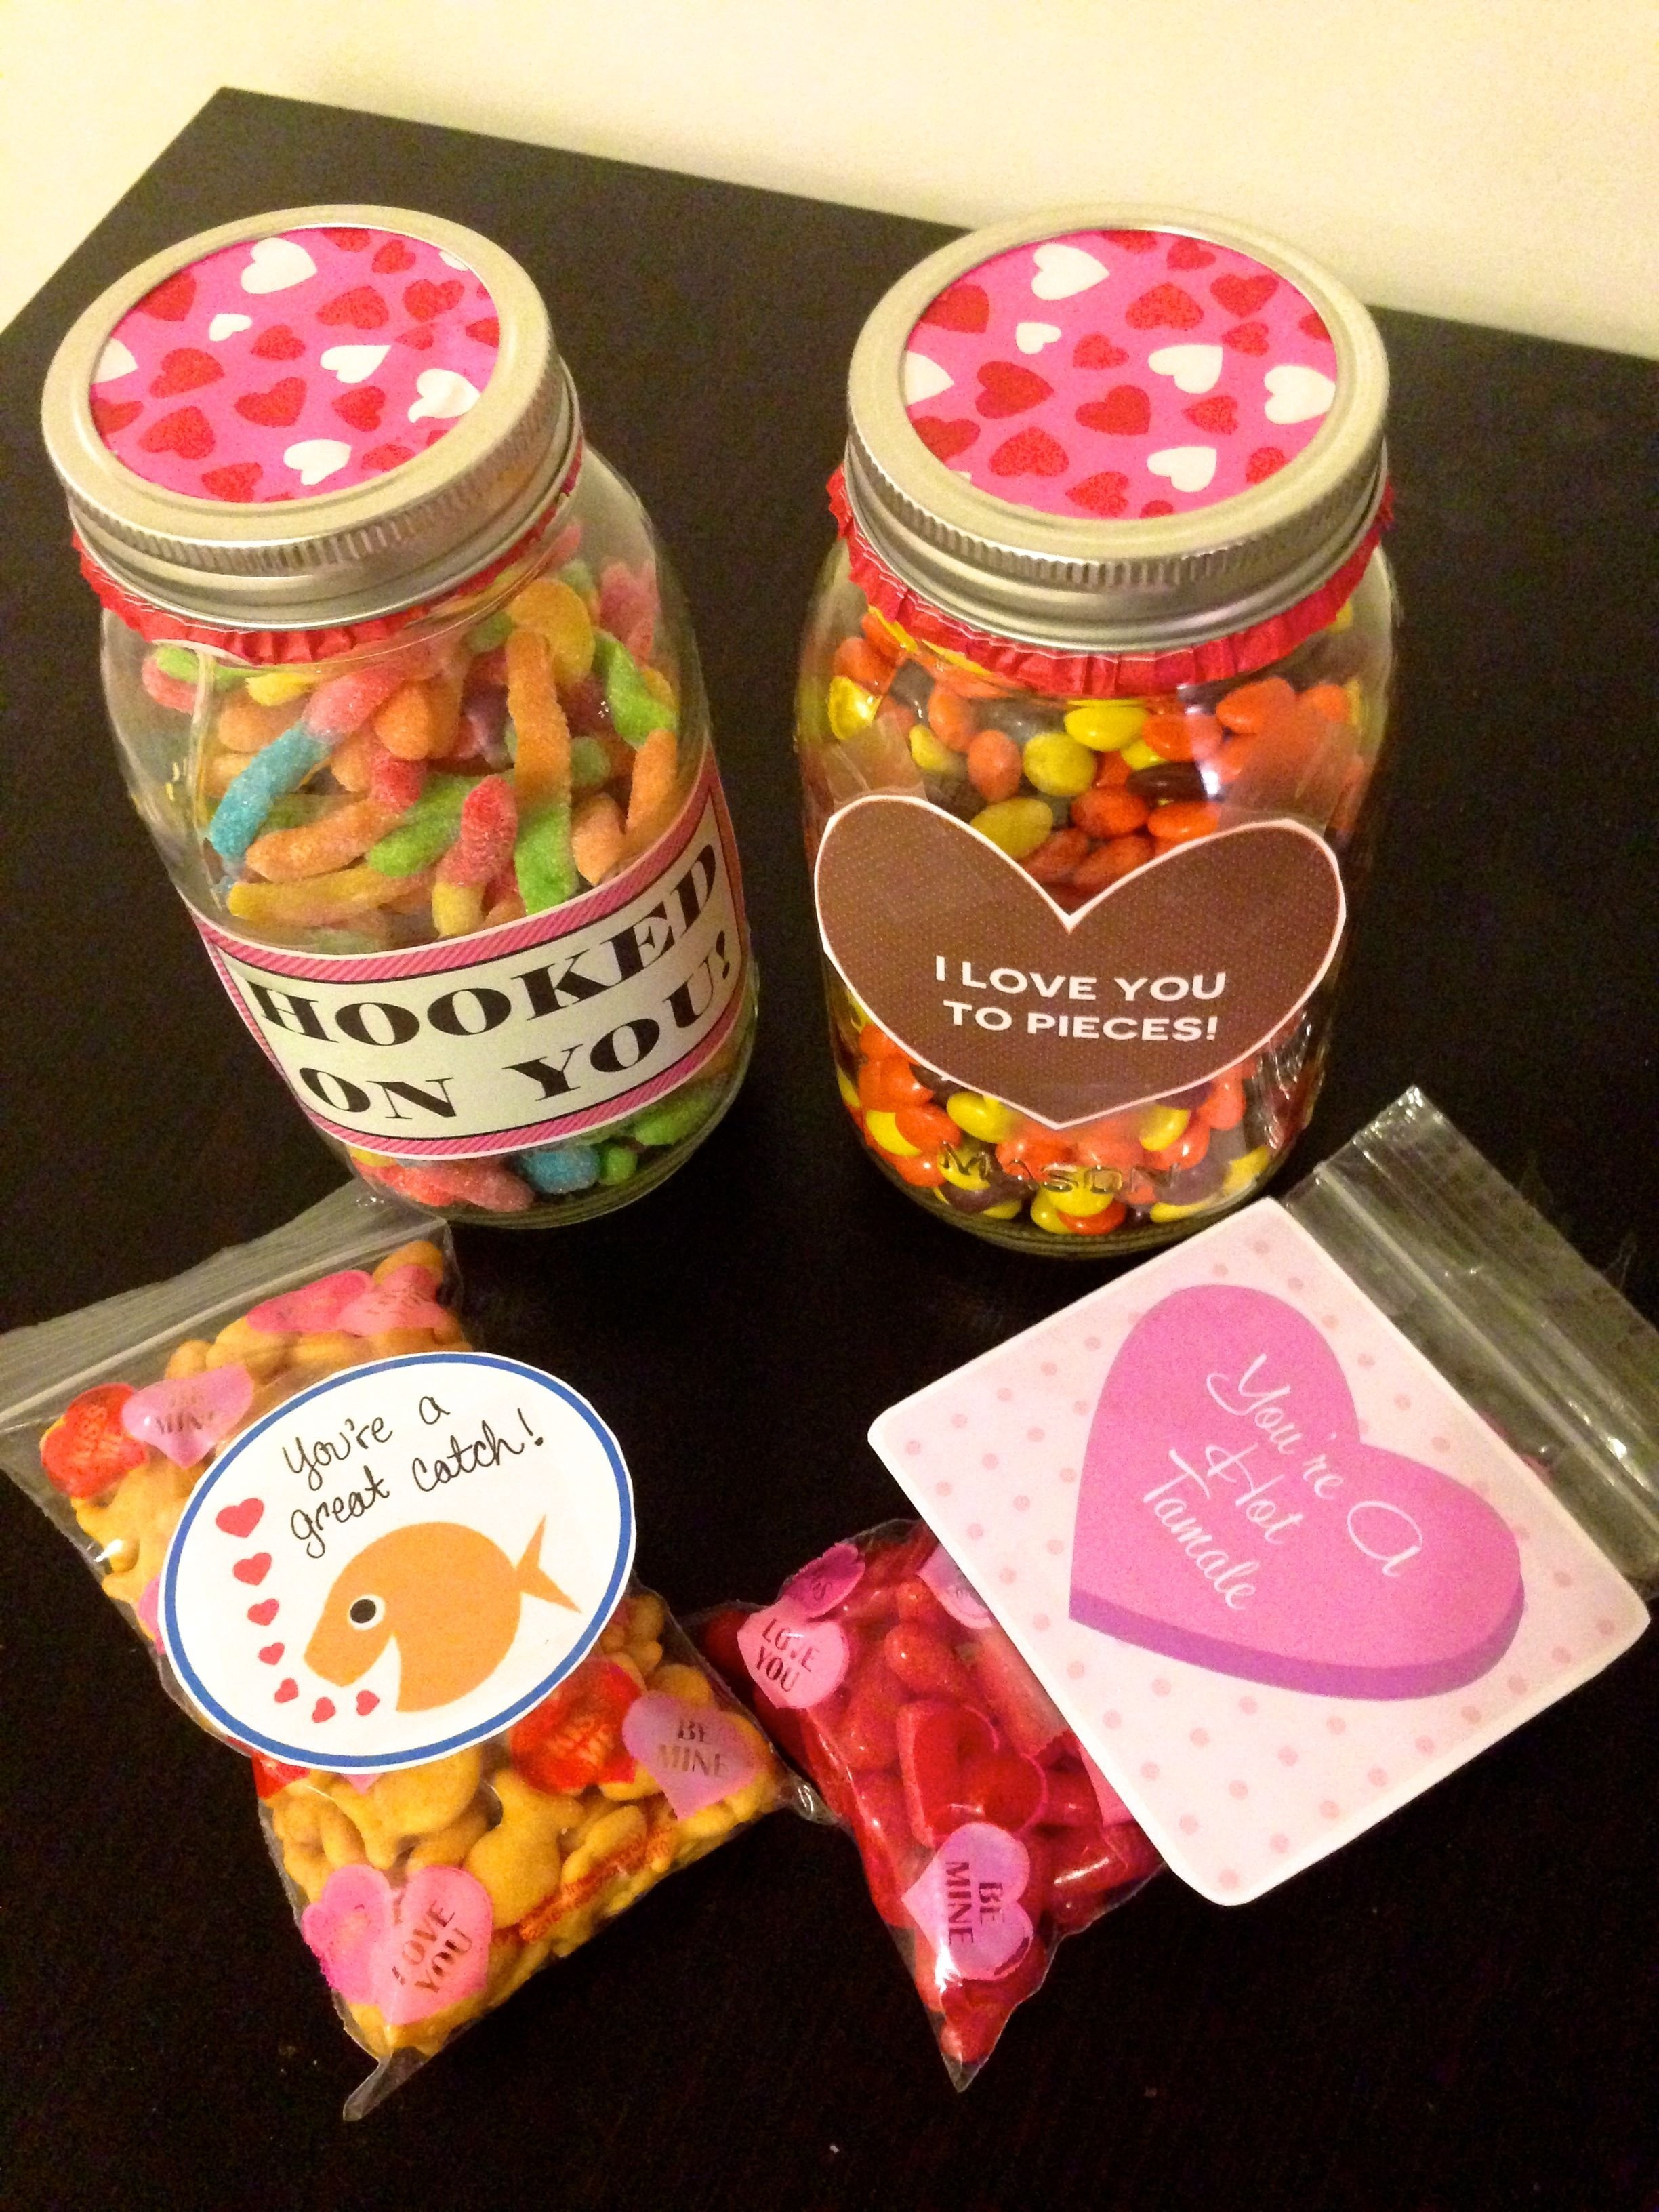 10 Unique Valentine Day Gifts For Him Ideas romantic gift idea for him on a budget budgeting honey and romantic 26 2020